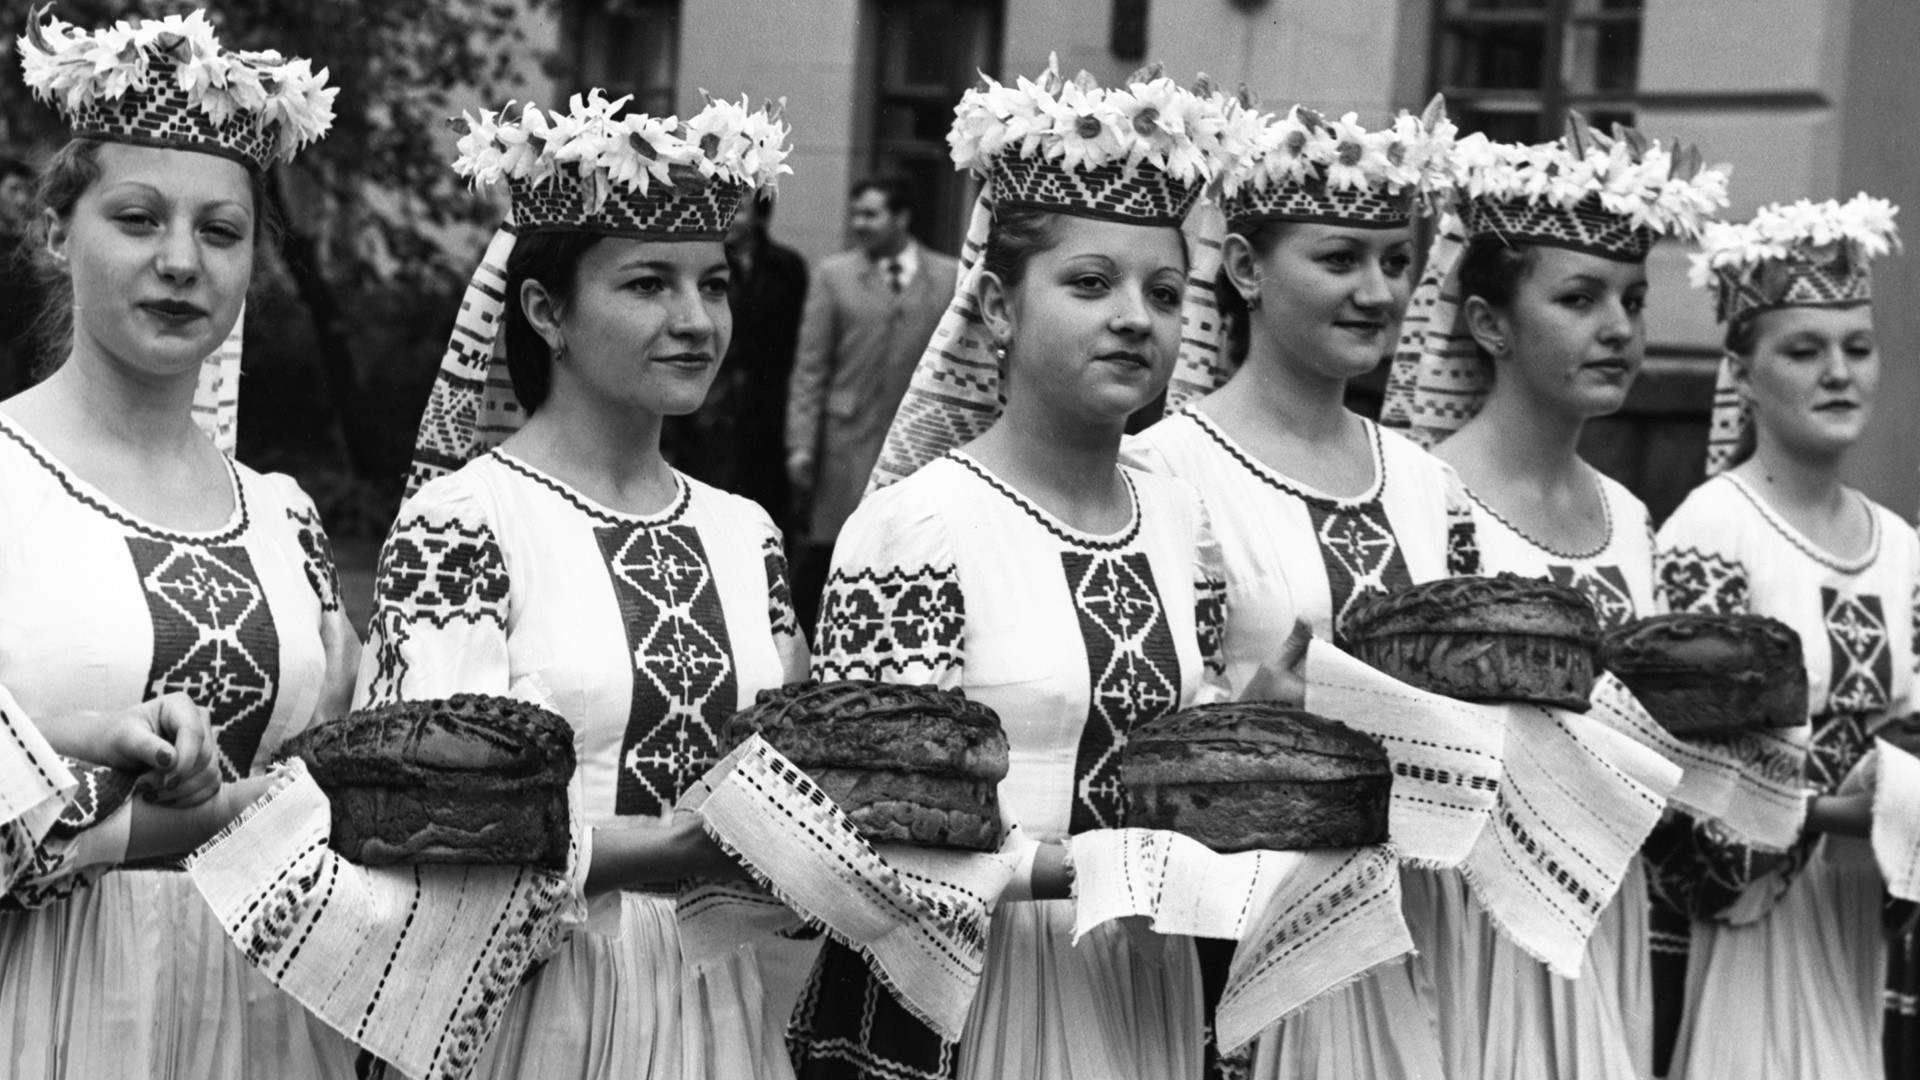 A harvest festival in the Belorussian Soviet Socialist Republic, 1987